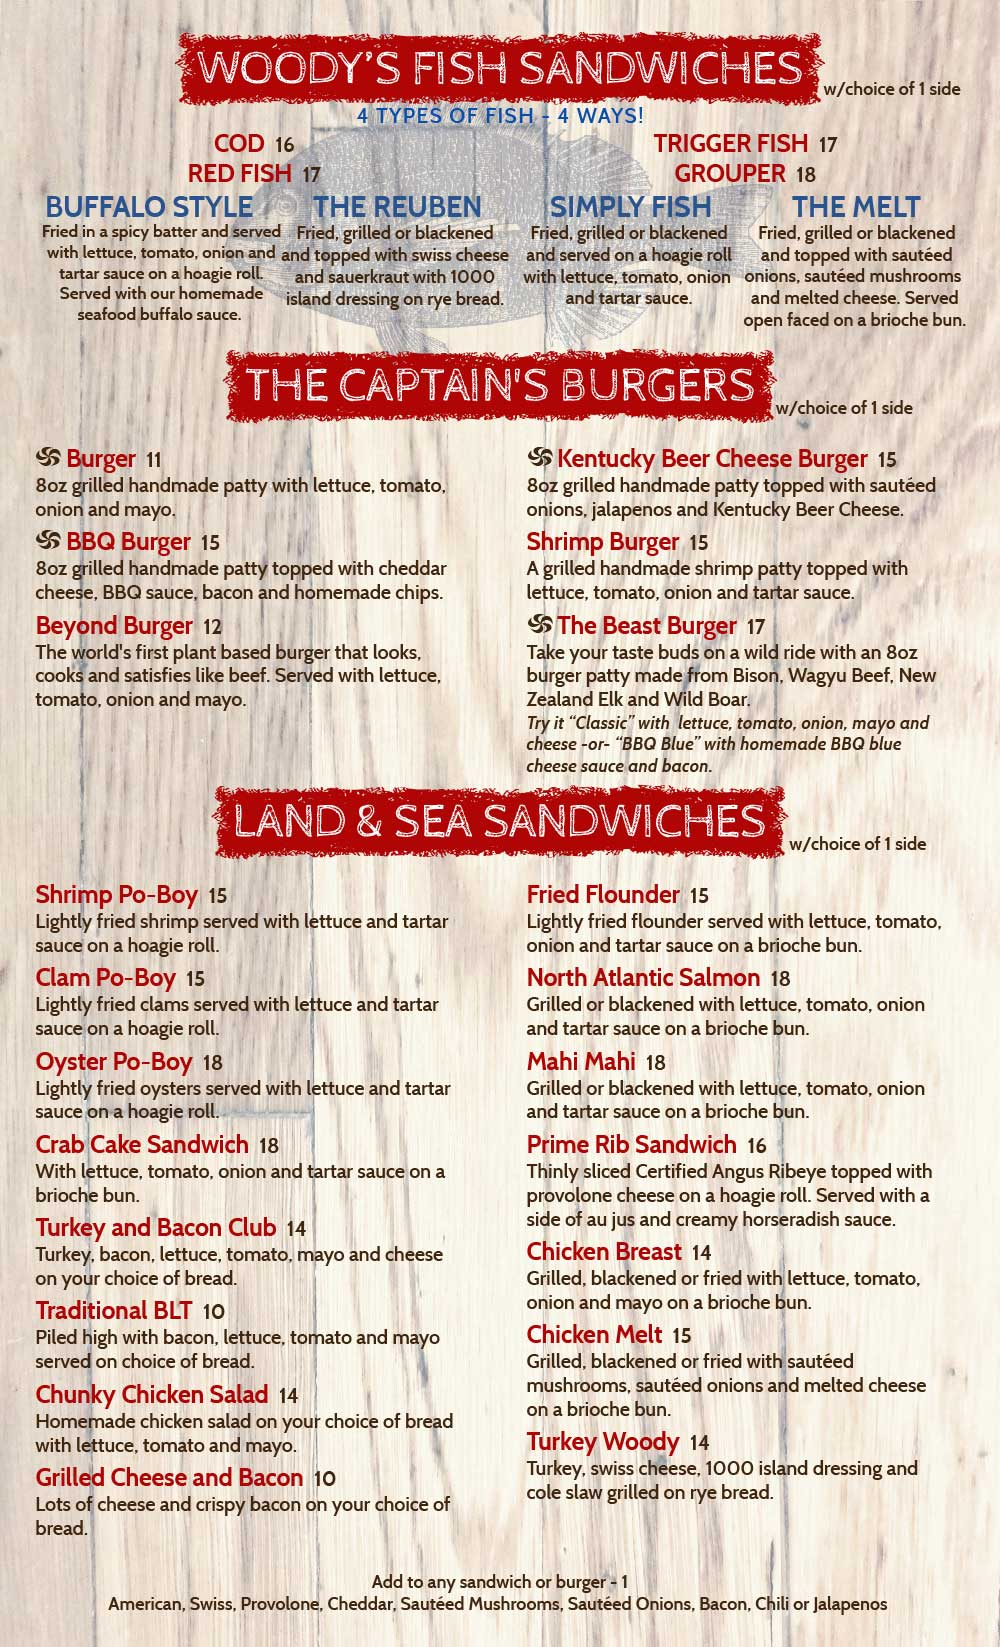 Woodys Menu Sandwiches